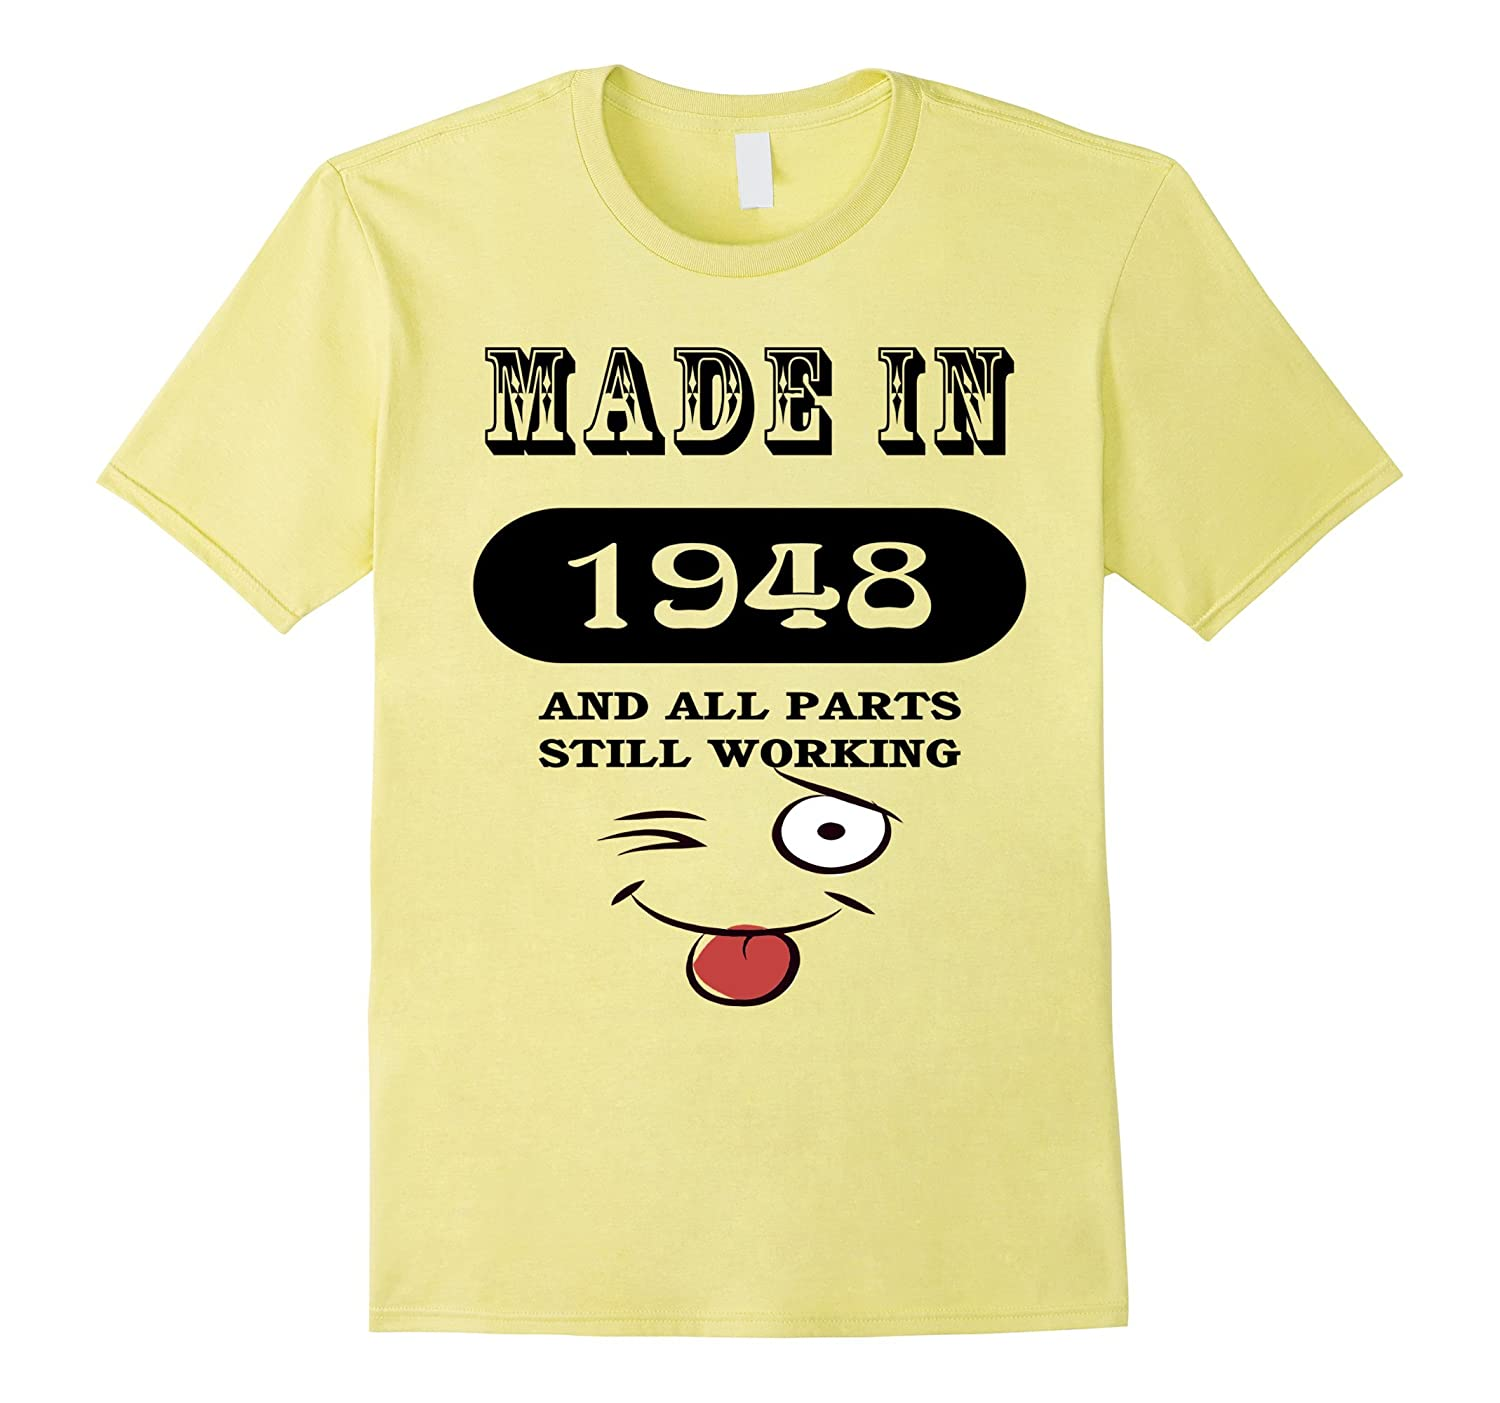 68th Birthday Gift Made in 1948 Funny Ladies Gentlemans T-Sh-TH